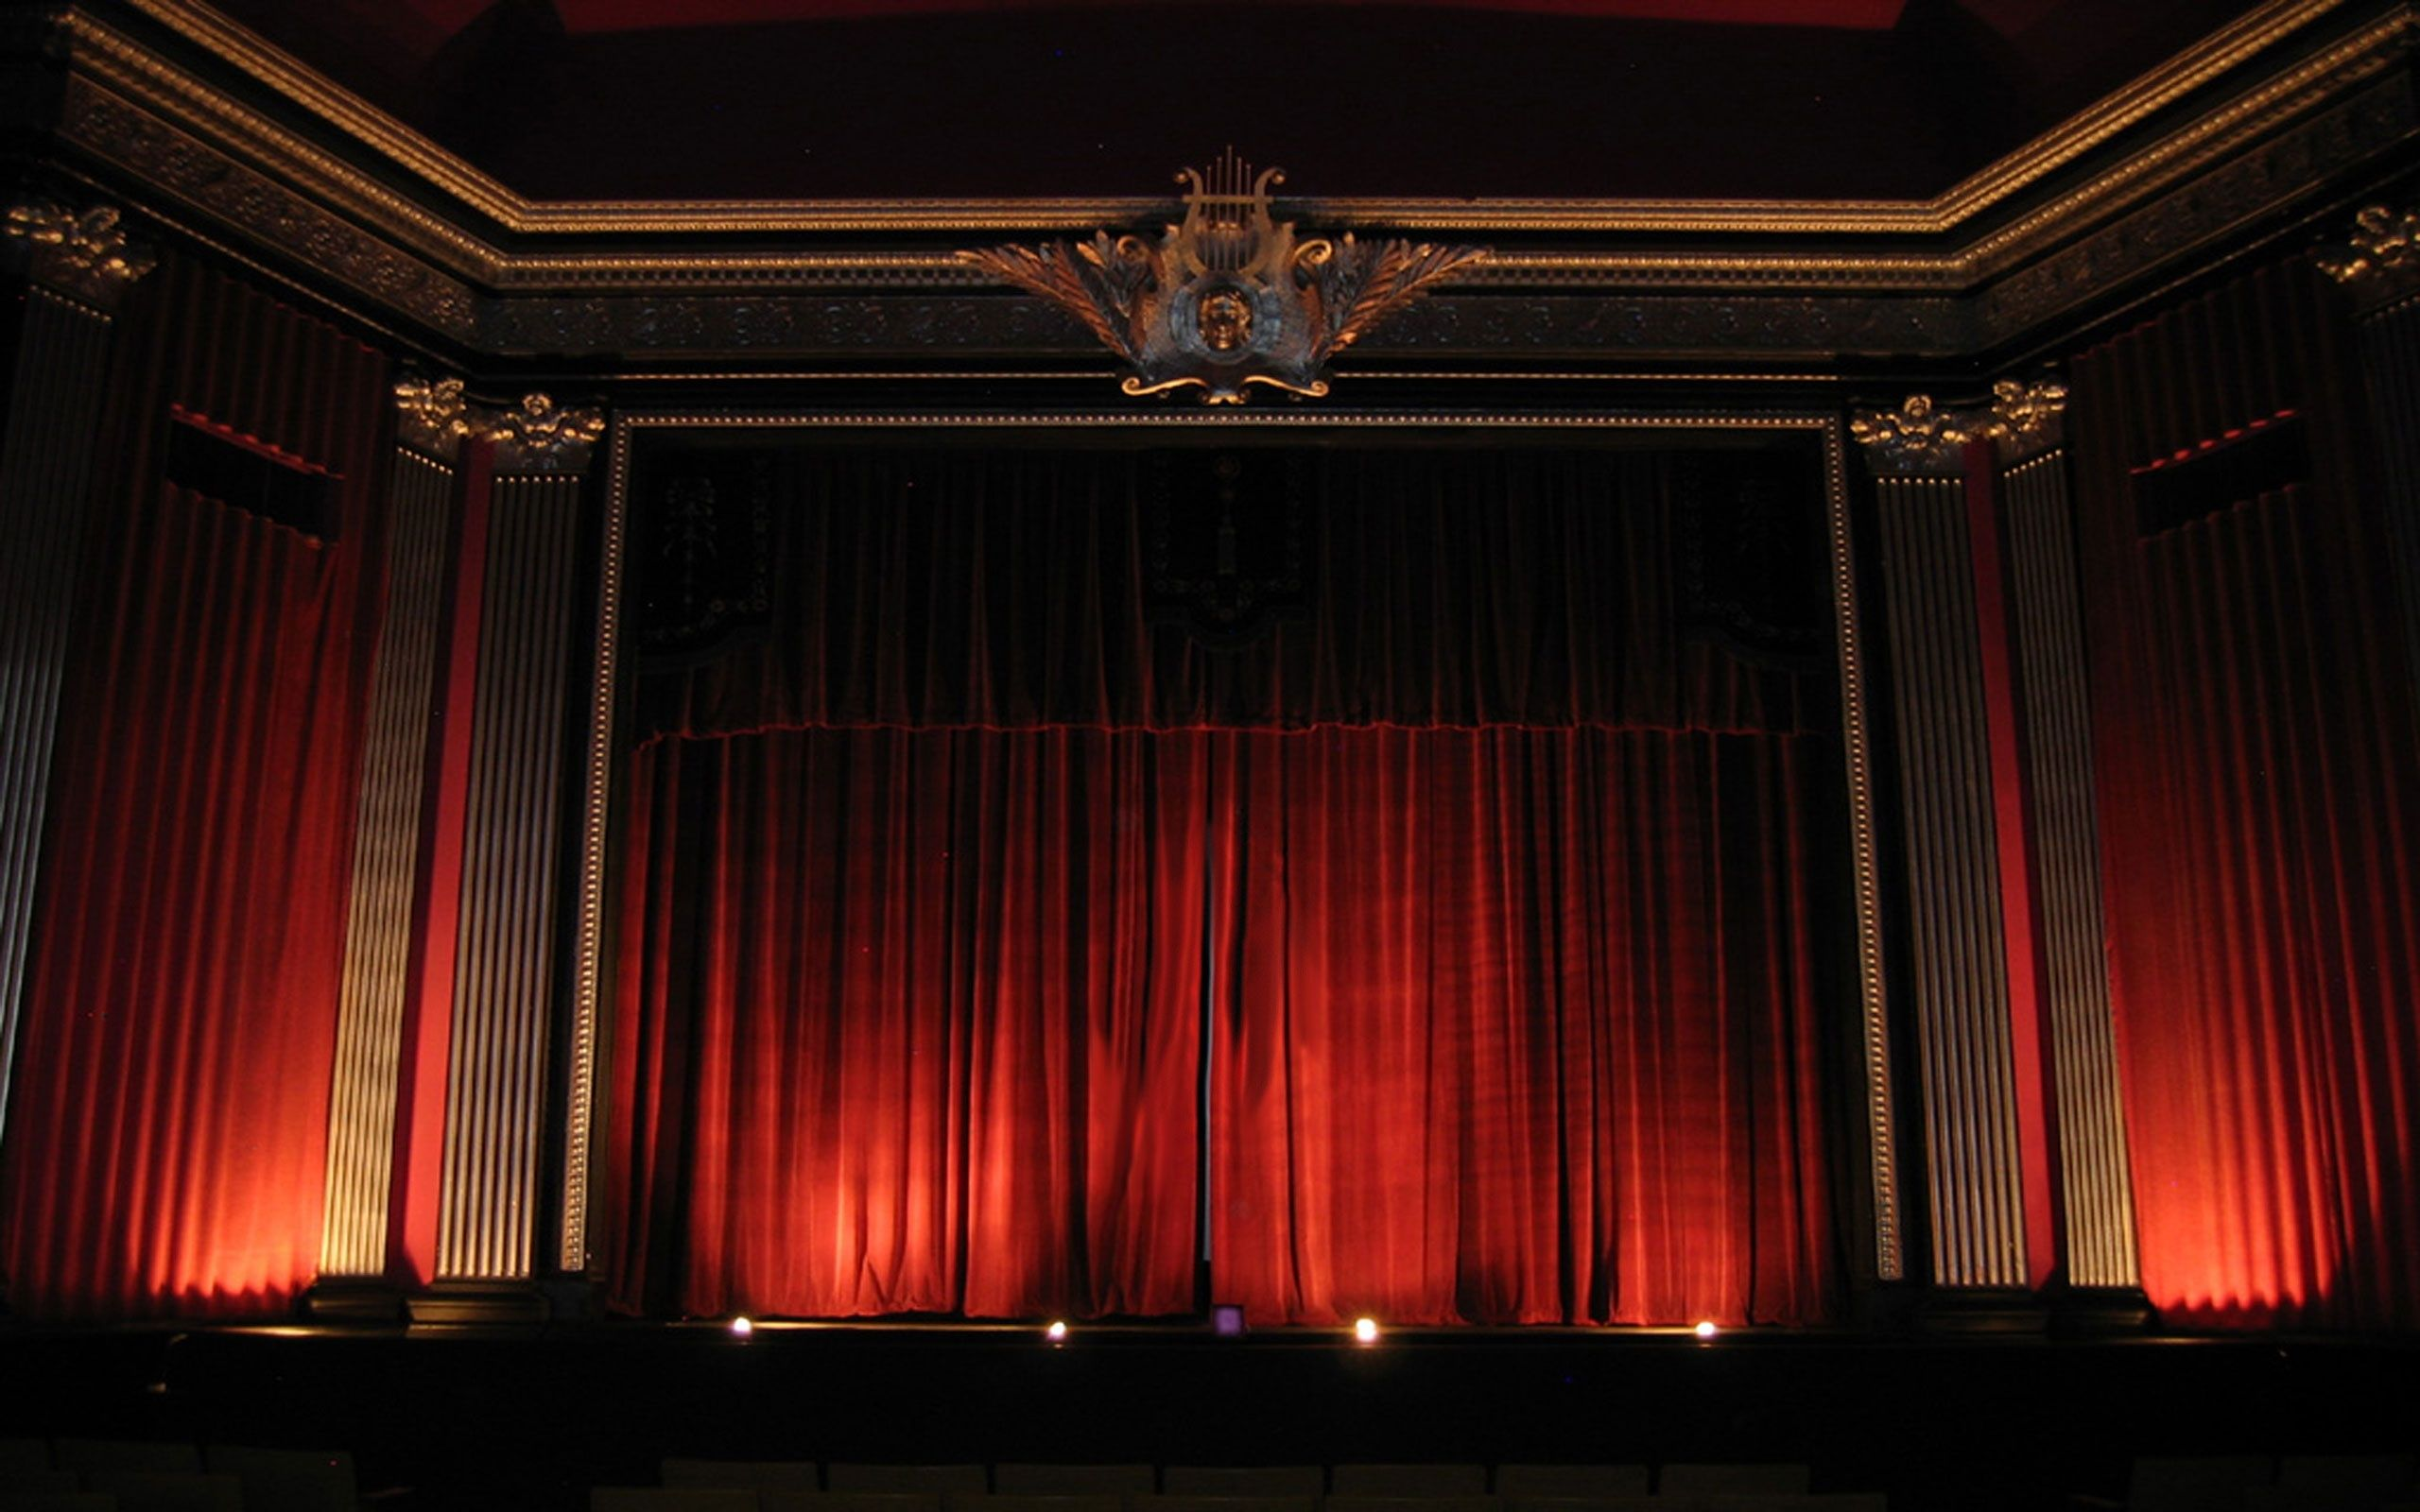 Cheap black stage curtains - Black Theater Curtains Black Stage Curtains For Sale Theater Curtains And Molding Without The Ornate